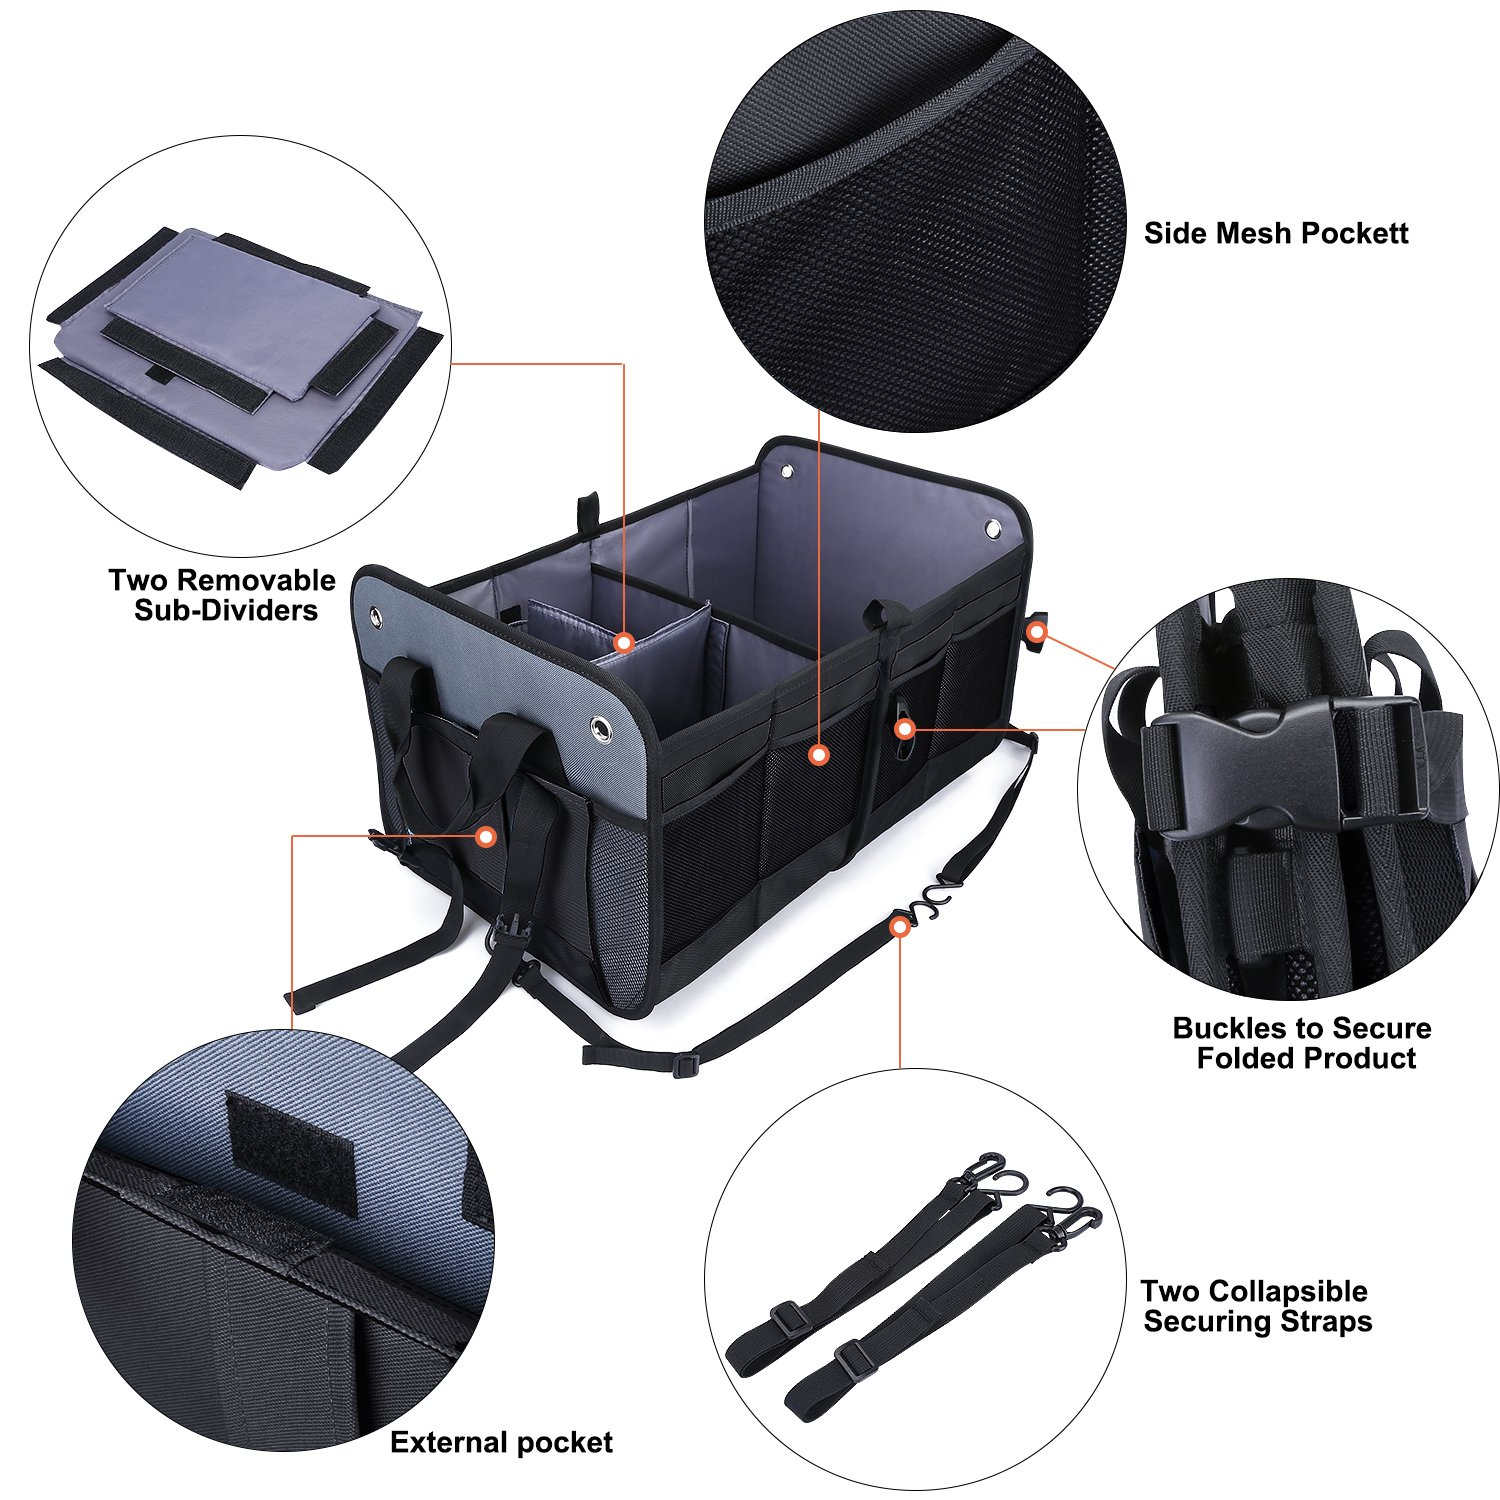 Auto Truck Vehicle 4350406478 Eco-Friendly Heavy Duty Waterproof Storage Bin and Carrier 66L for SUV Black G4Free Trunk Organizer- Collapsible Auto Car /& SUV Cargo Storage Container